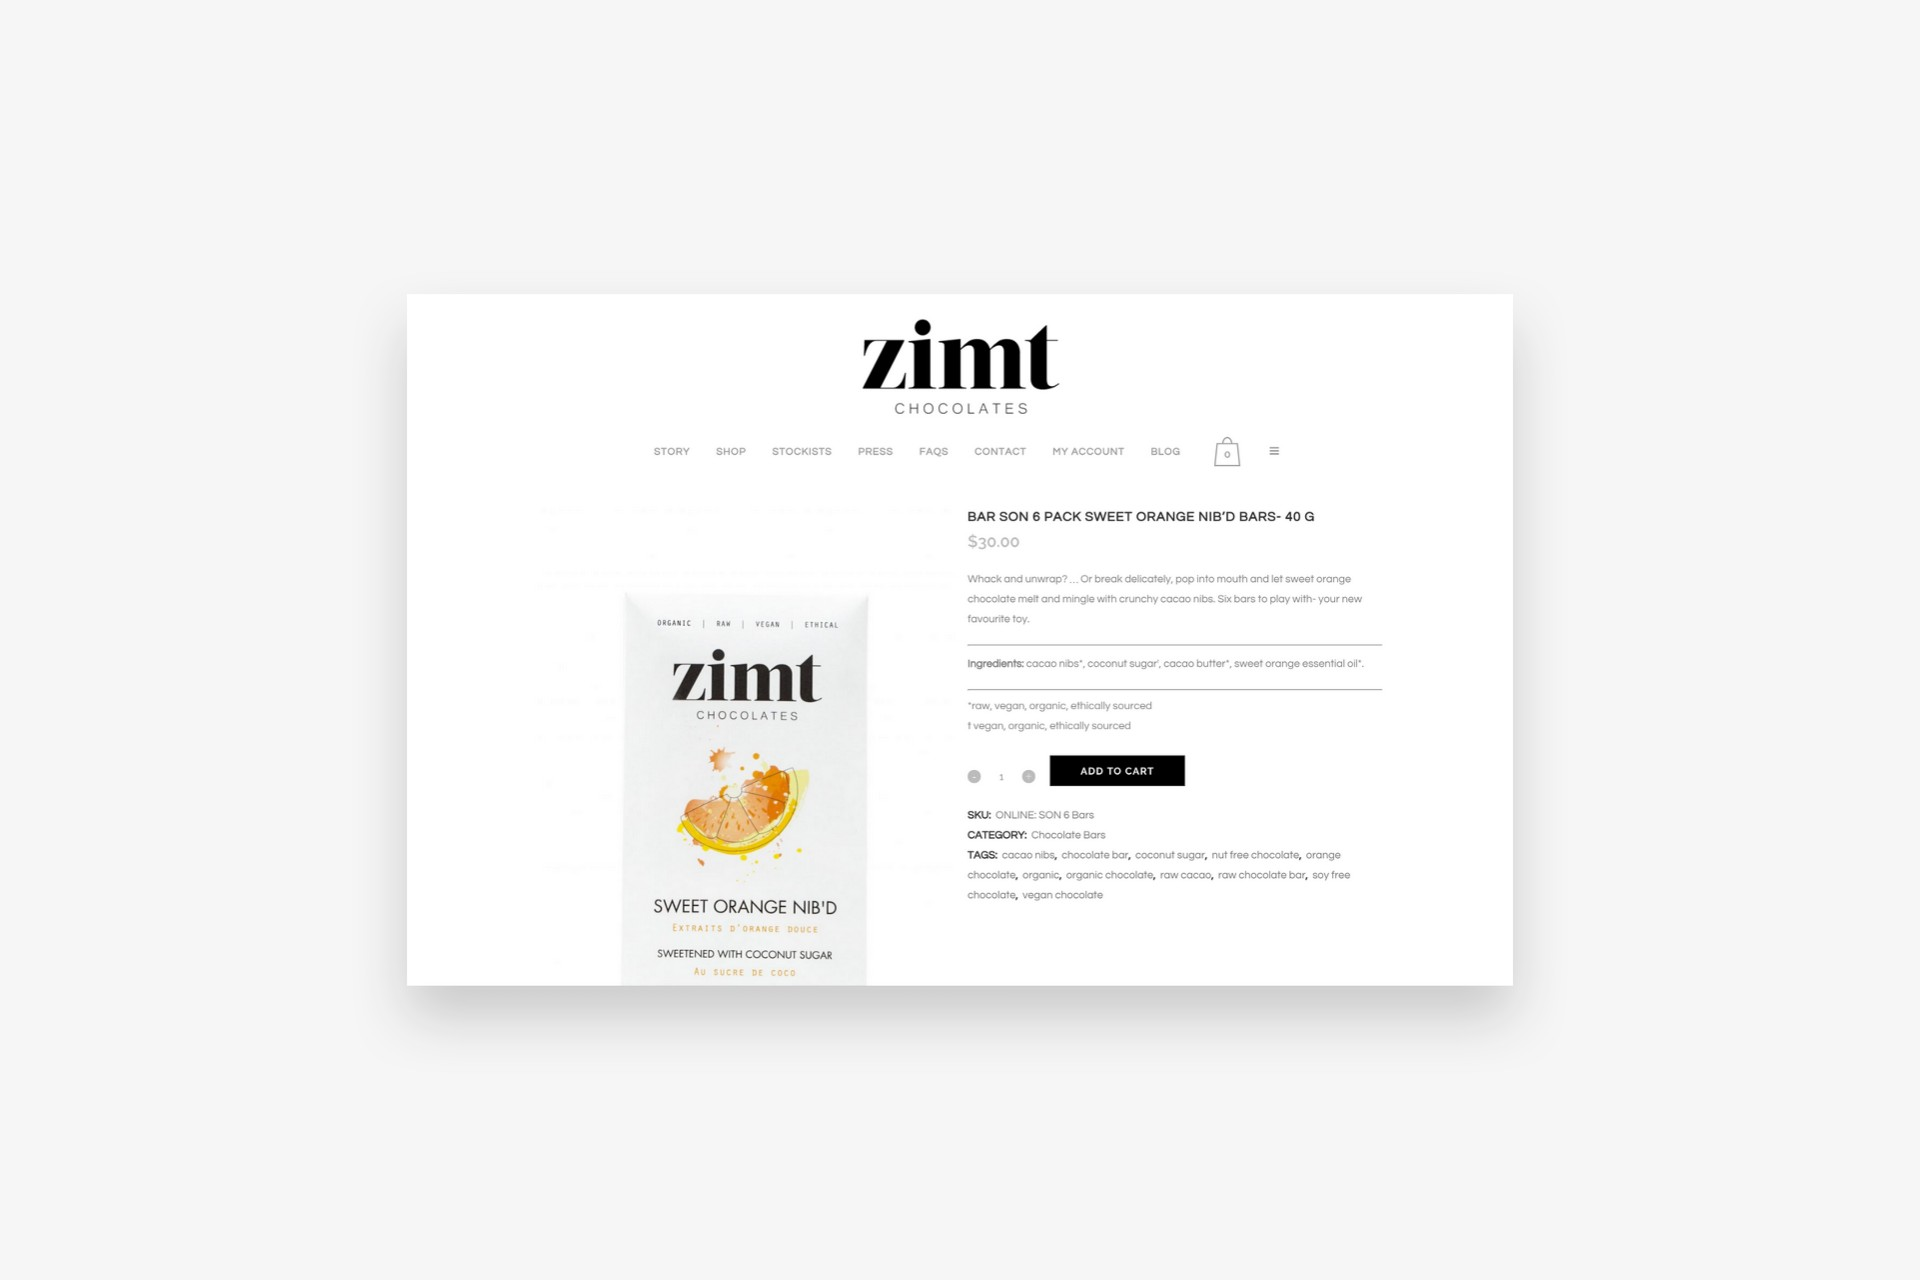 Zimt Chocolates Orange Nib Bar